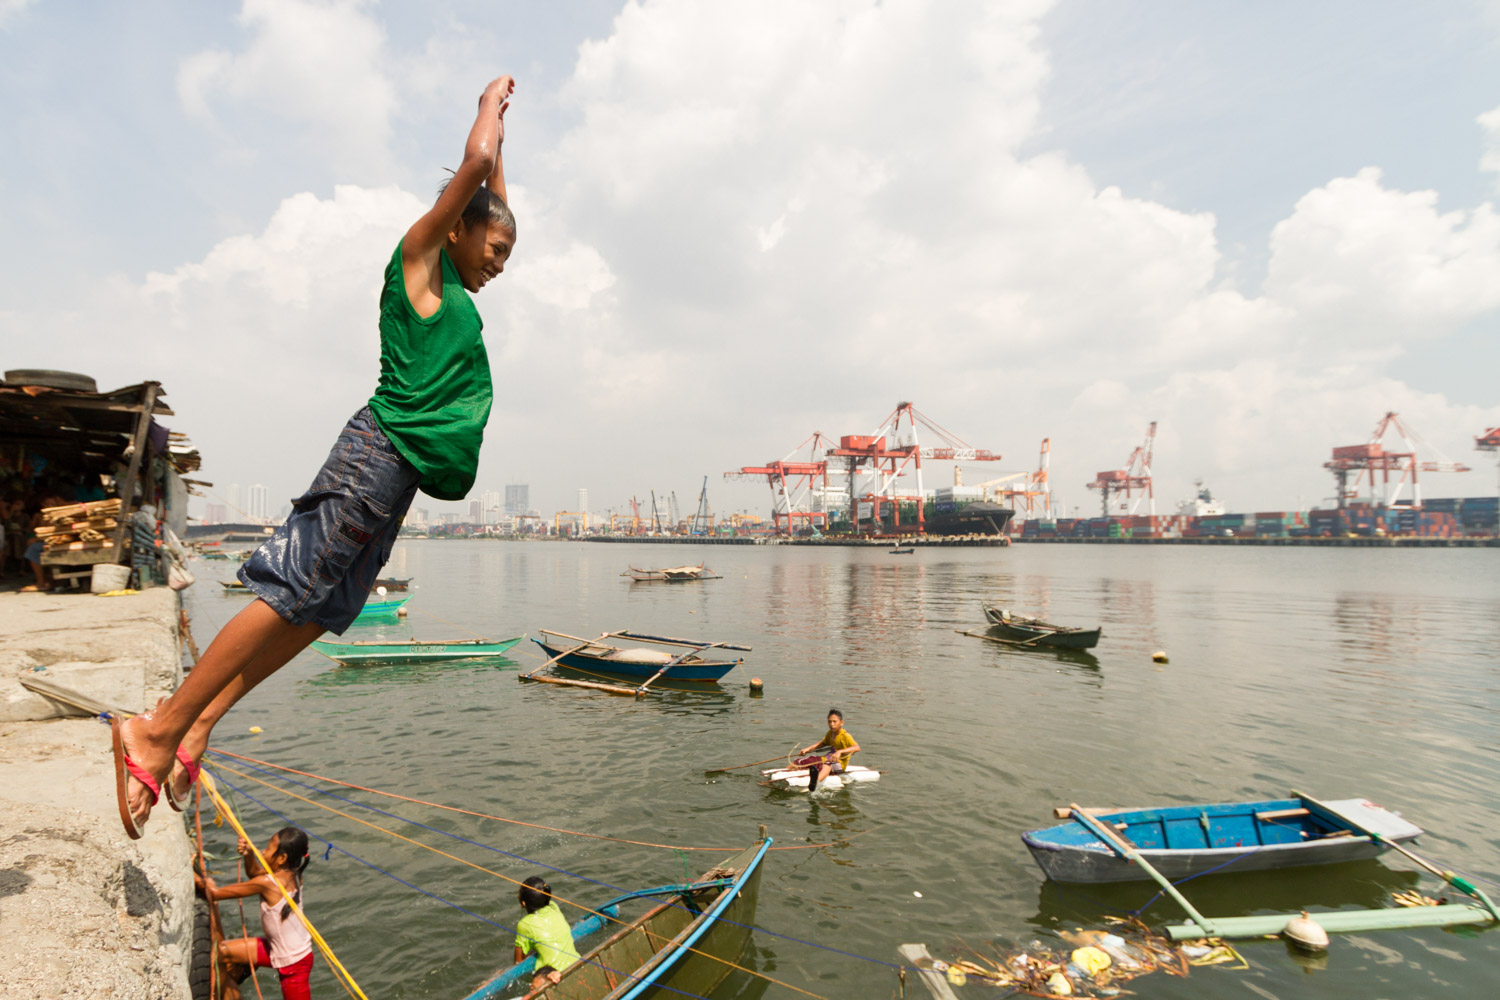 Baseco is an informal neighborhood of Manila located between the international port and the Pasig river. More than 50 000 people are living there in very precarious conditions. Children are playing and jumping in the contaminated water of the international port. Baseco, Manila, Metro Manila, Philippines - 18/10/2012.